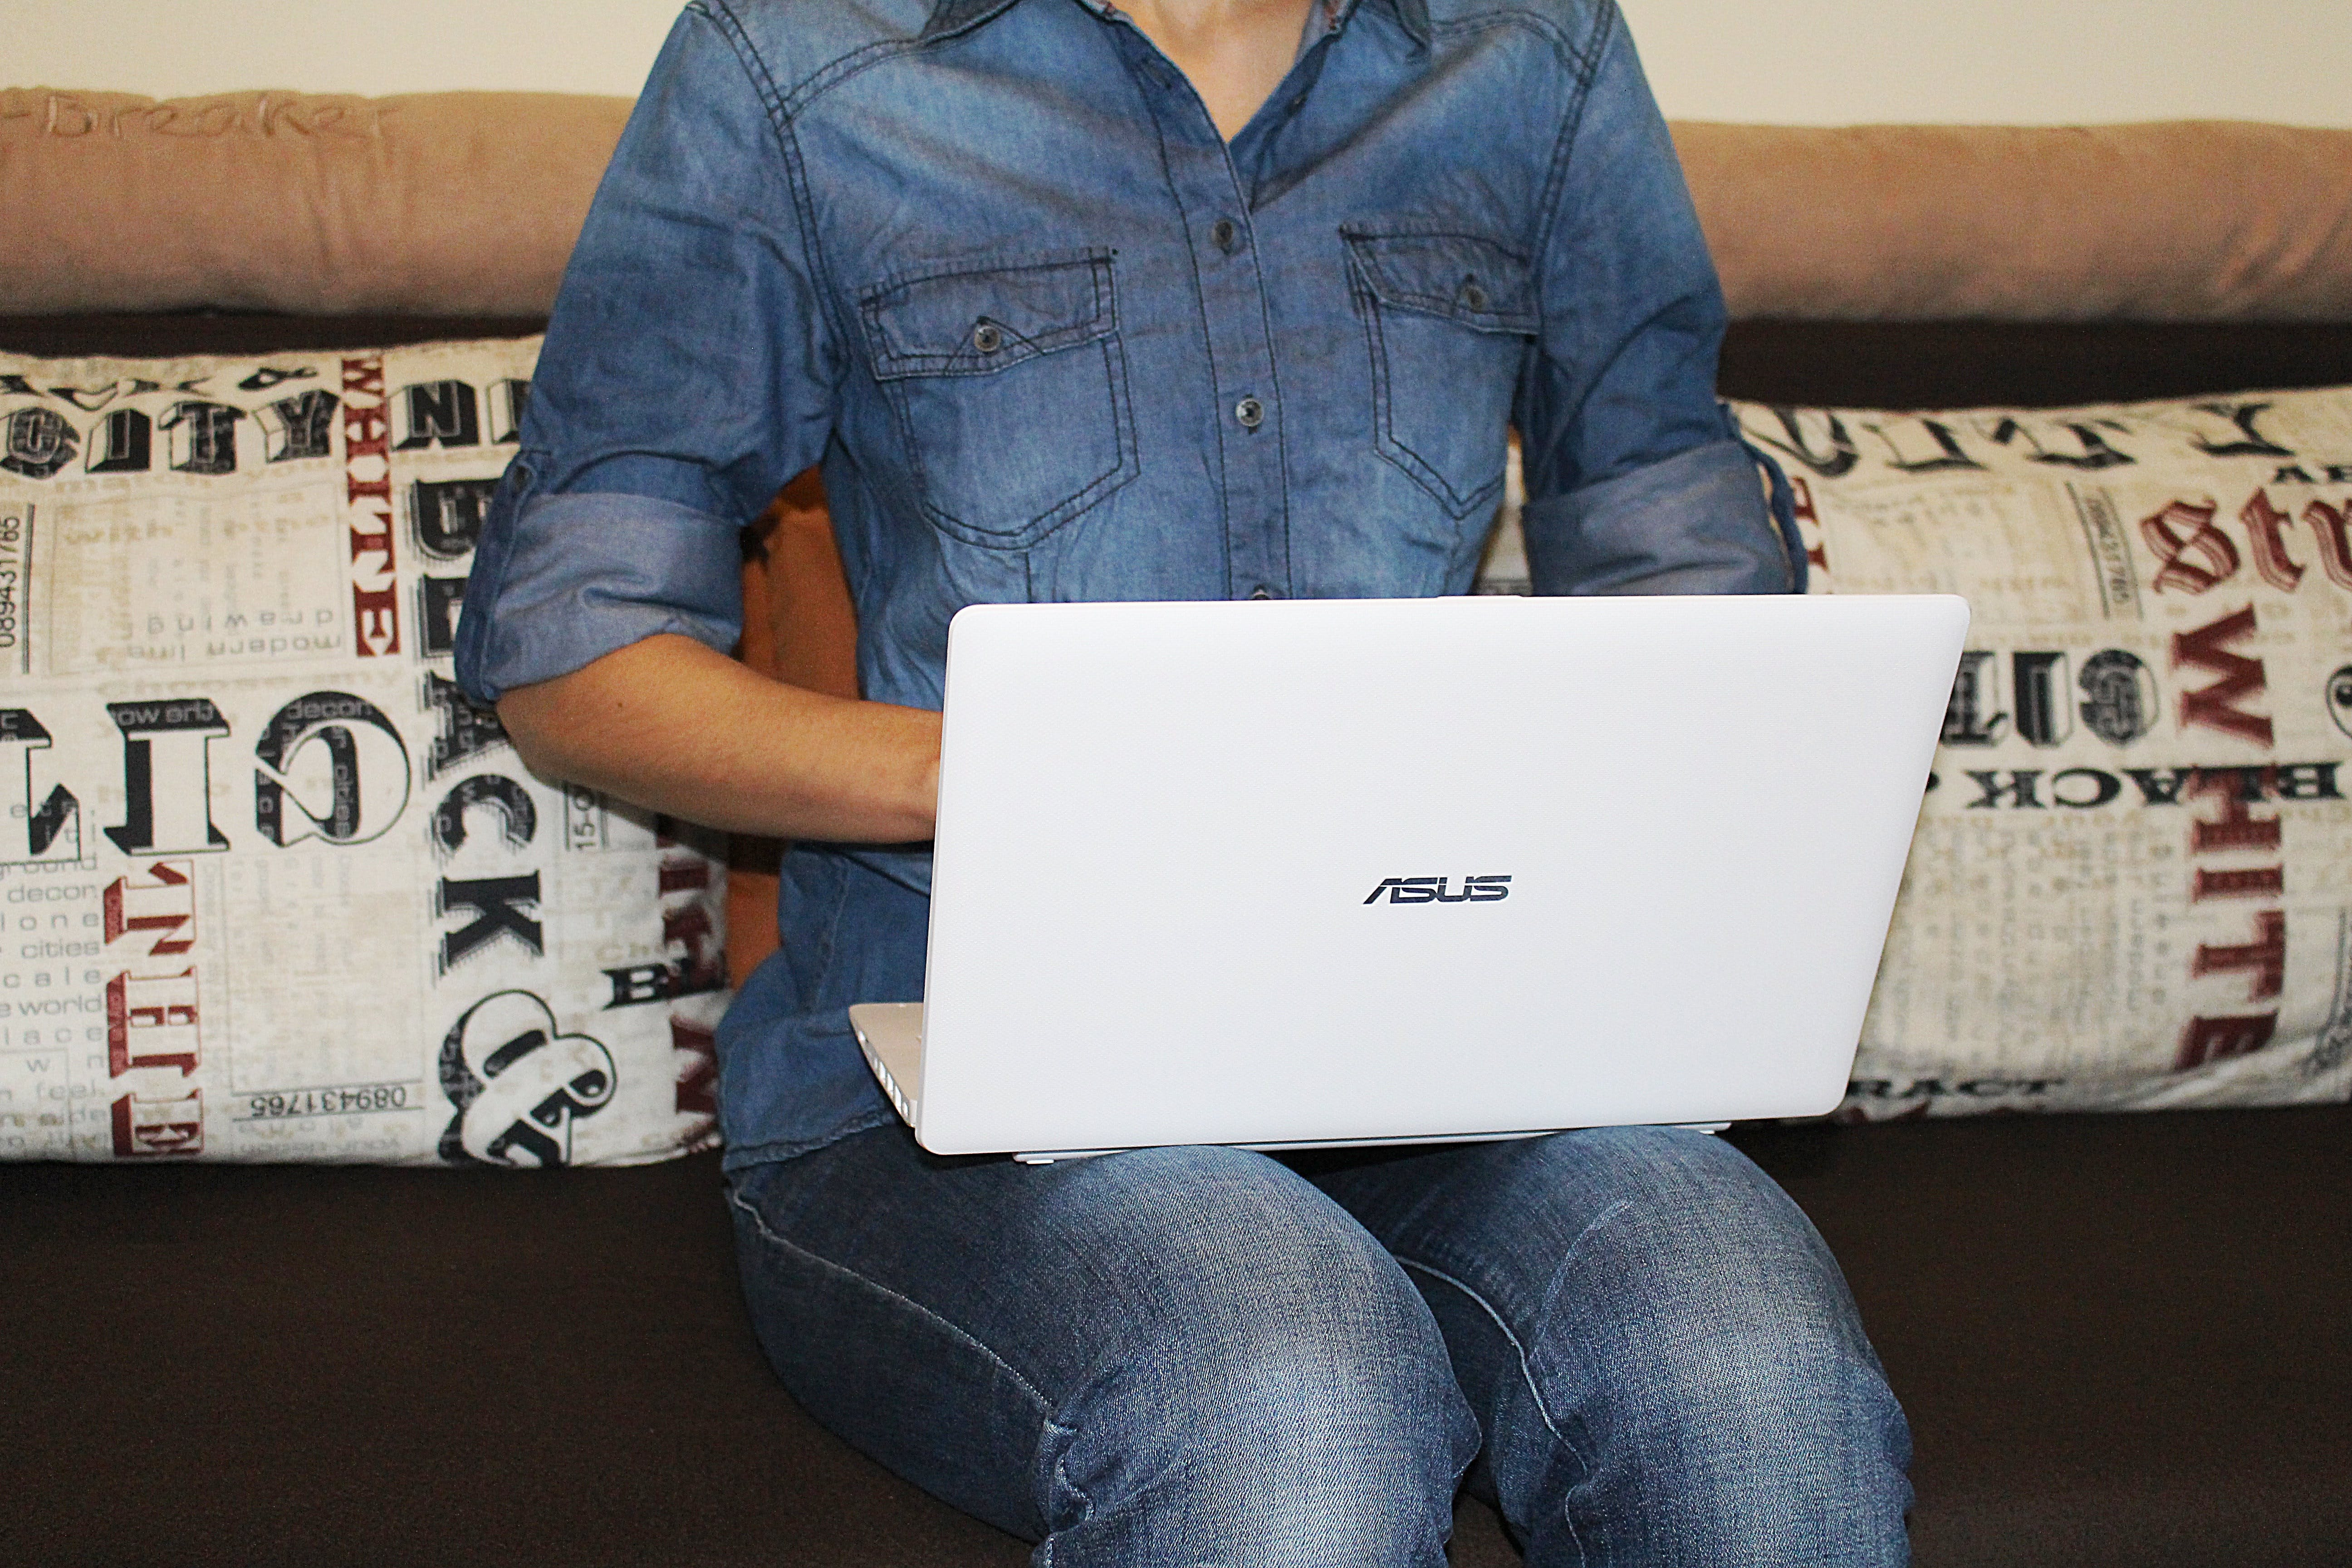 Person in Blue Dress Shirt Sitting on Couch While Using White Asus Laptop